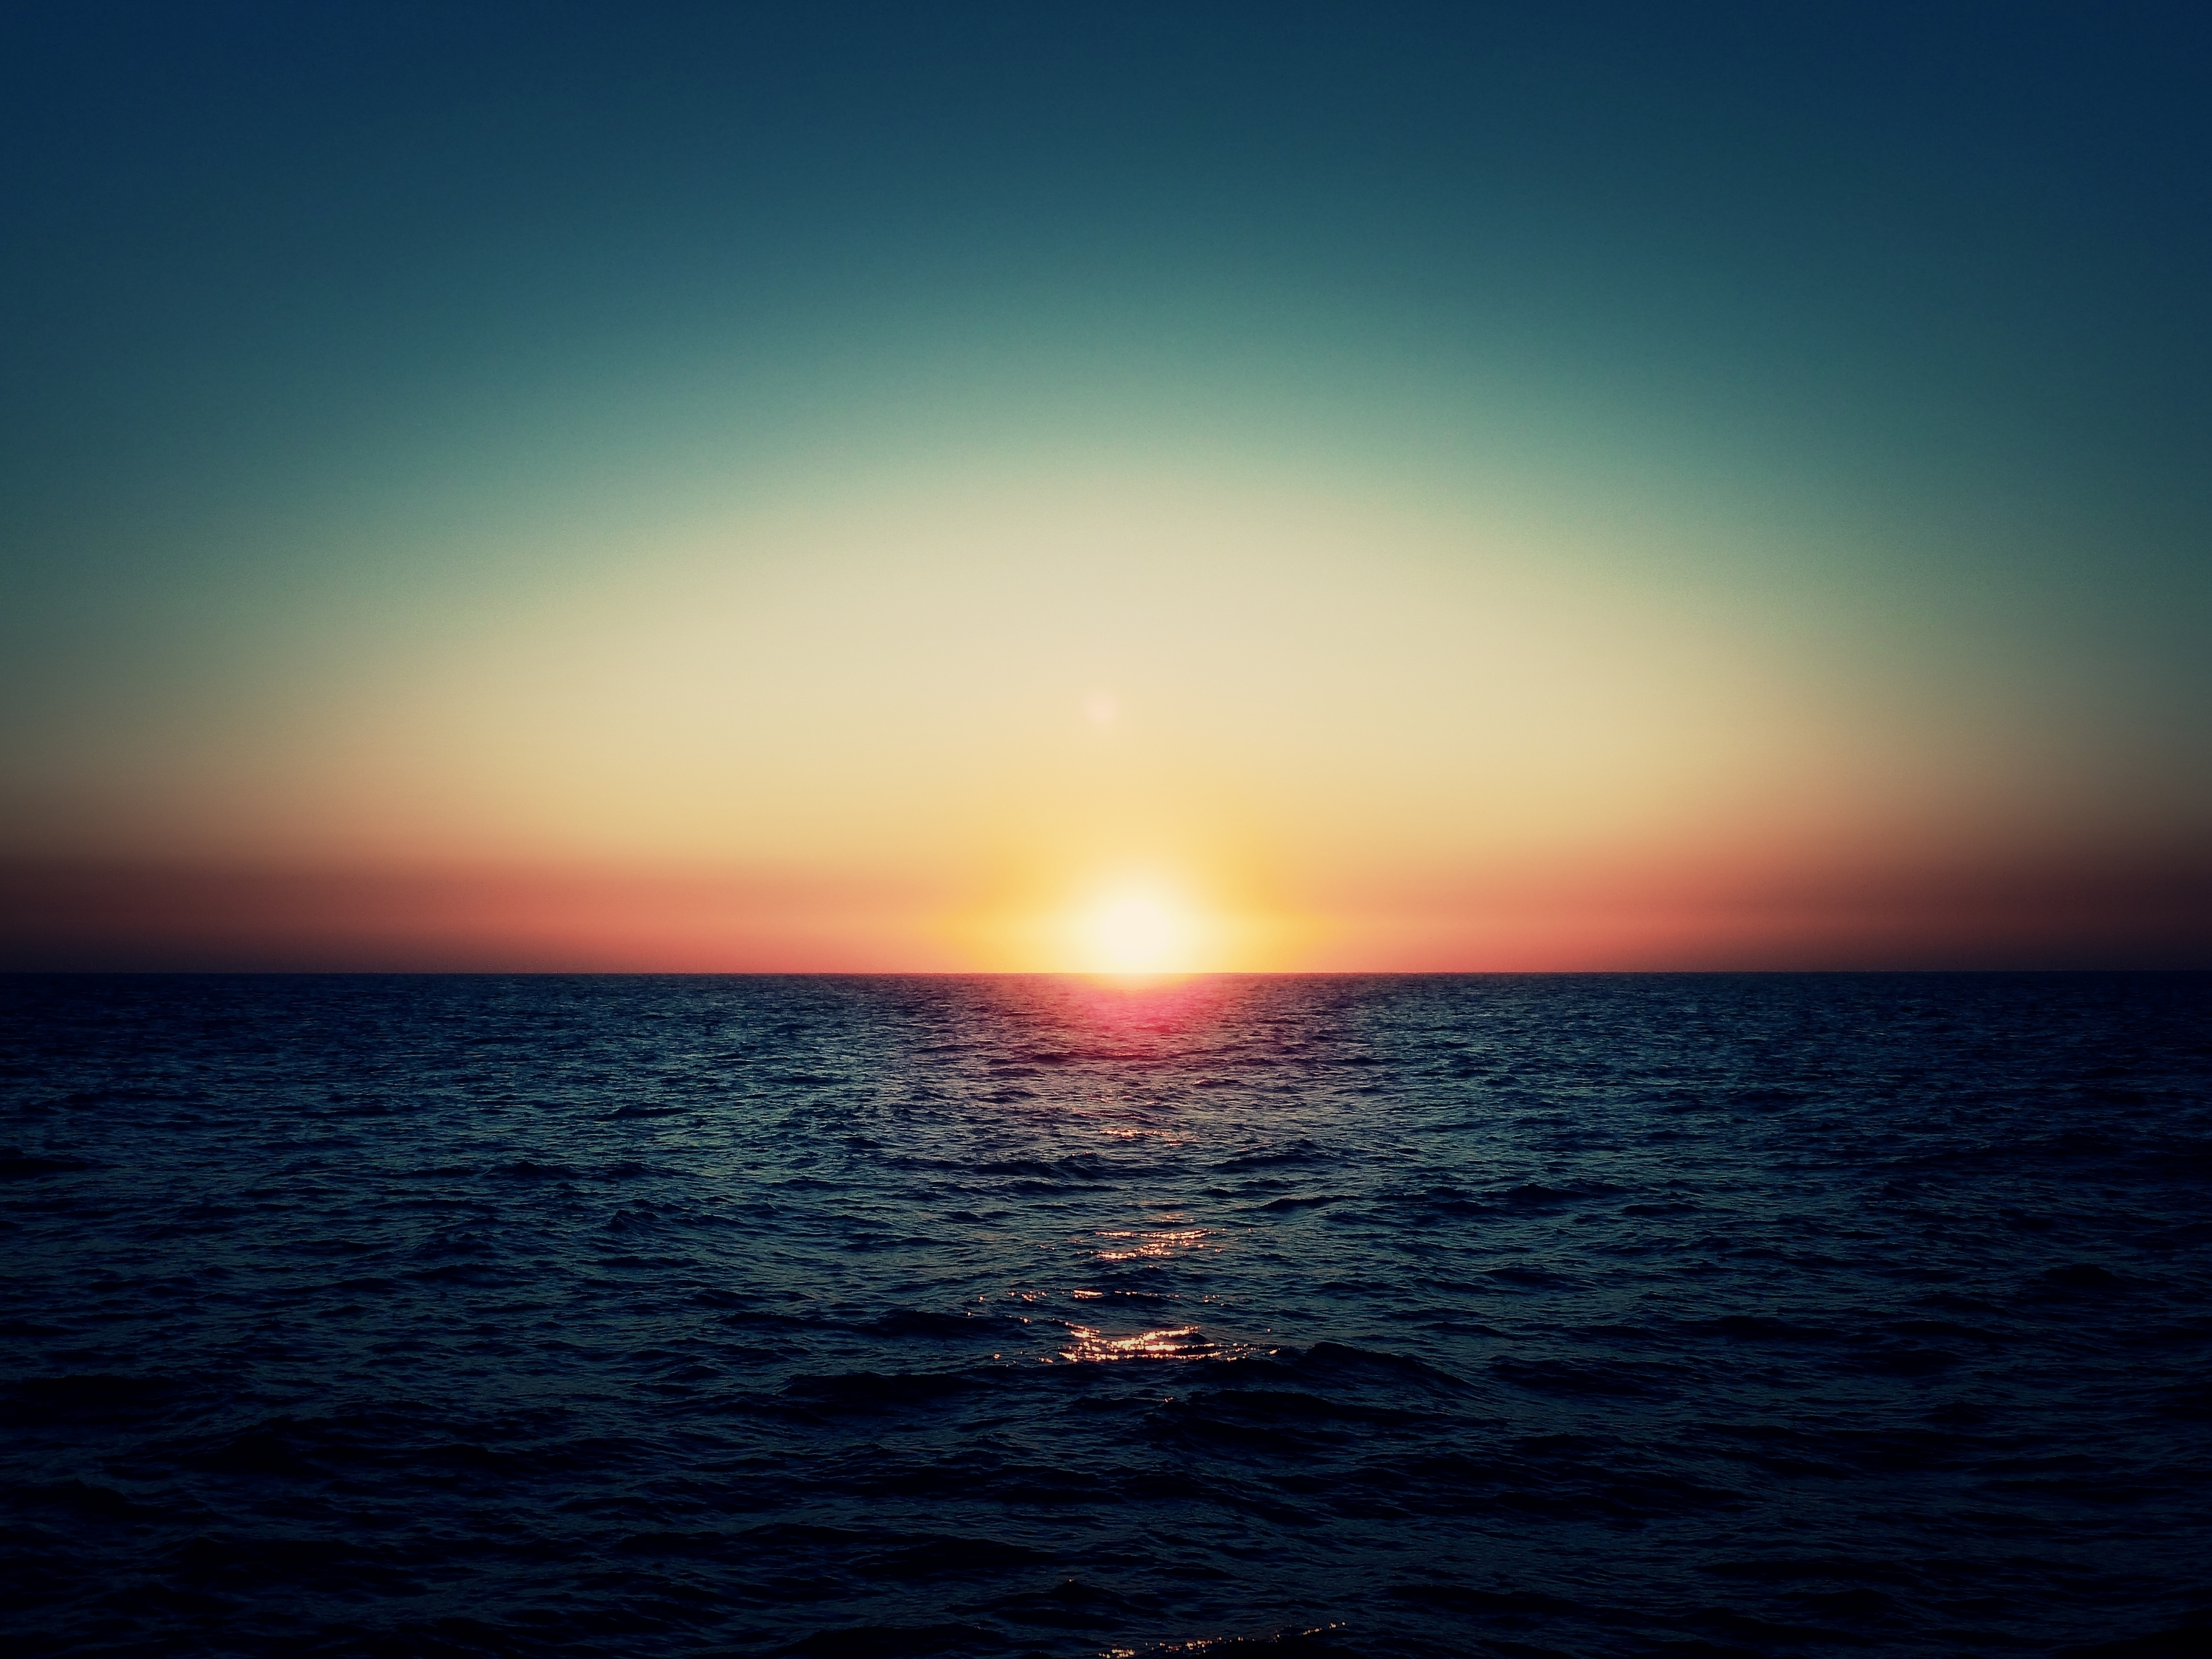 Sunset Full HD Wallpaper and Background Image | 3000x2250 ...